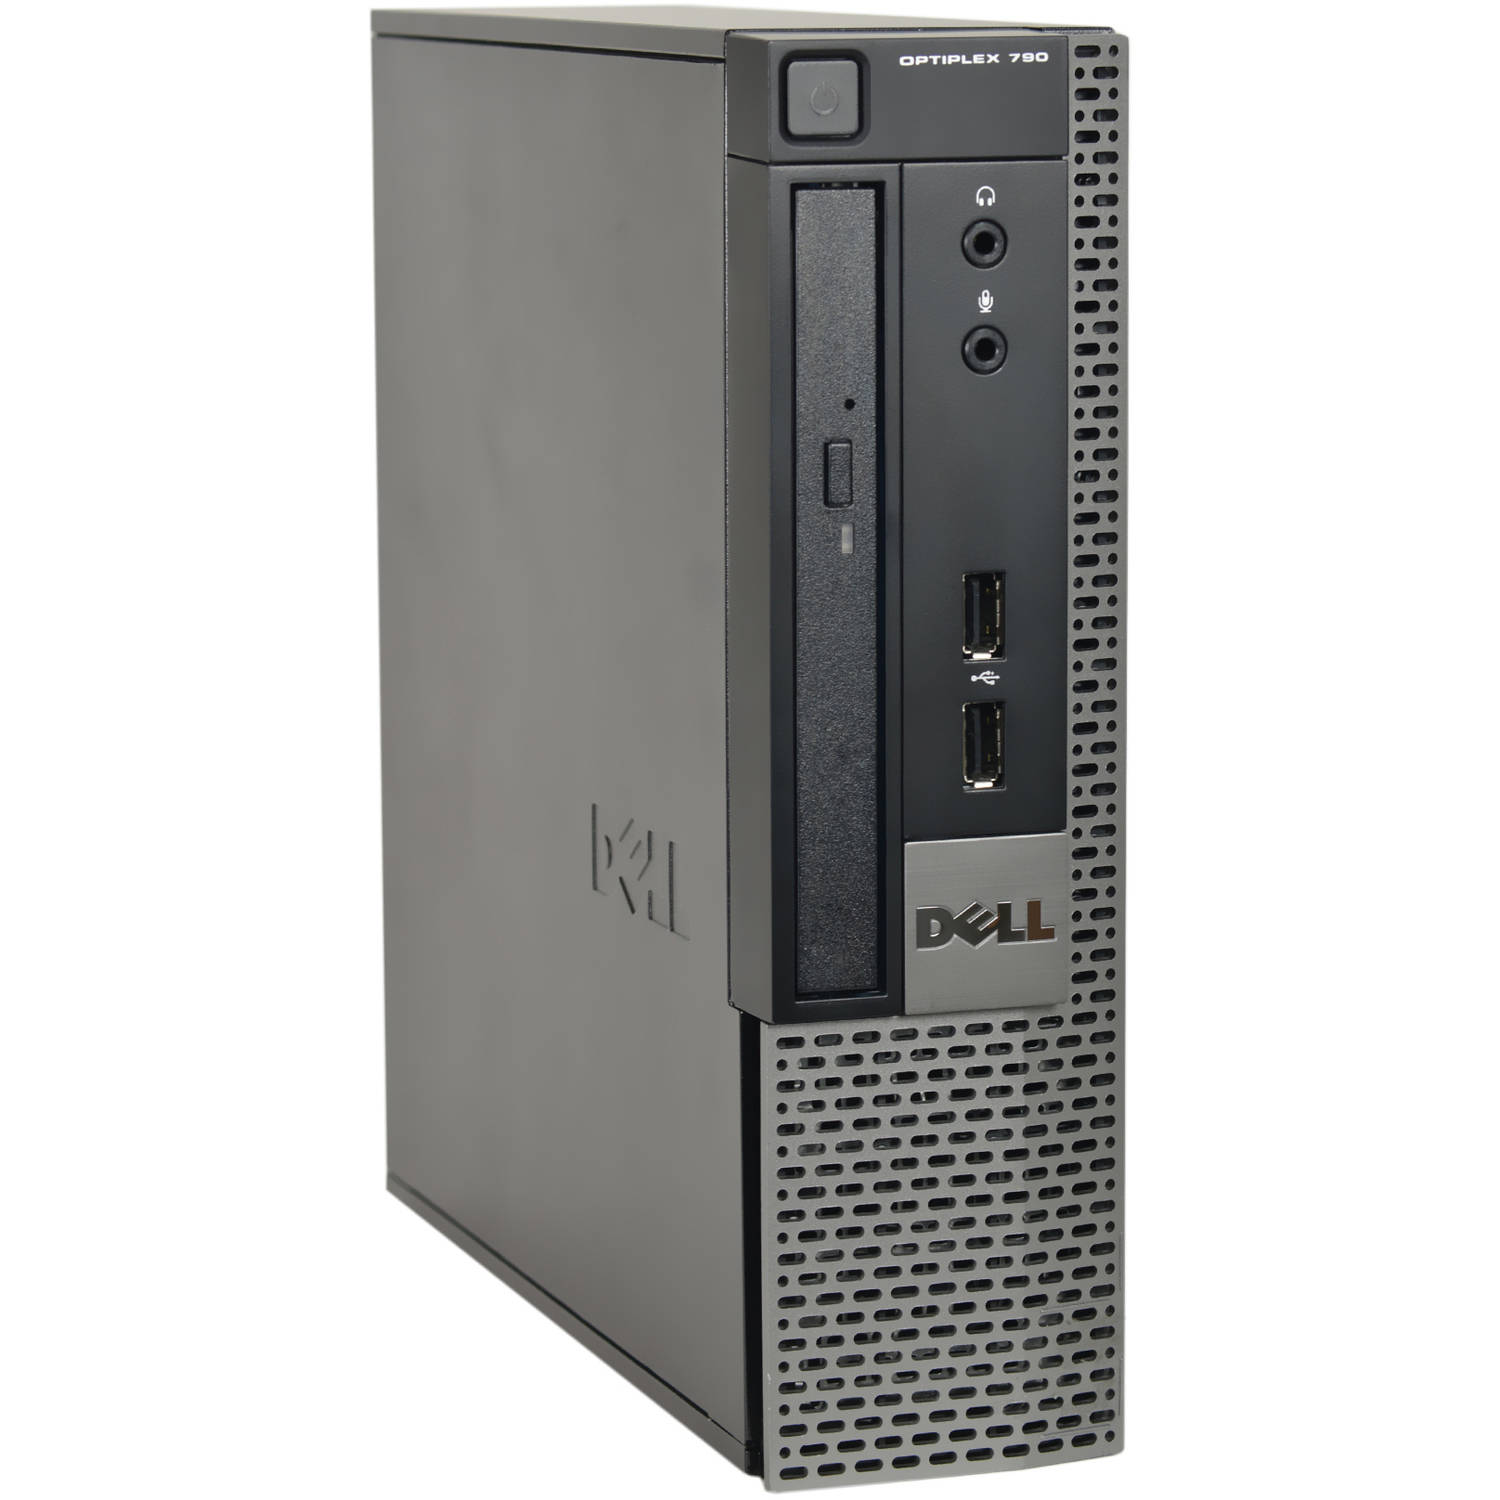 Refurbished Dell Optiplex 990-SFF WA1-0427 Desktop PC with Intel Core  i7-2600 Processor, 8GB Memory, 250GB Hard Drive and Windows 10 Pro (Monitor  Not